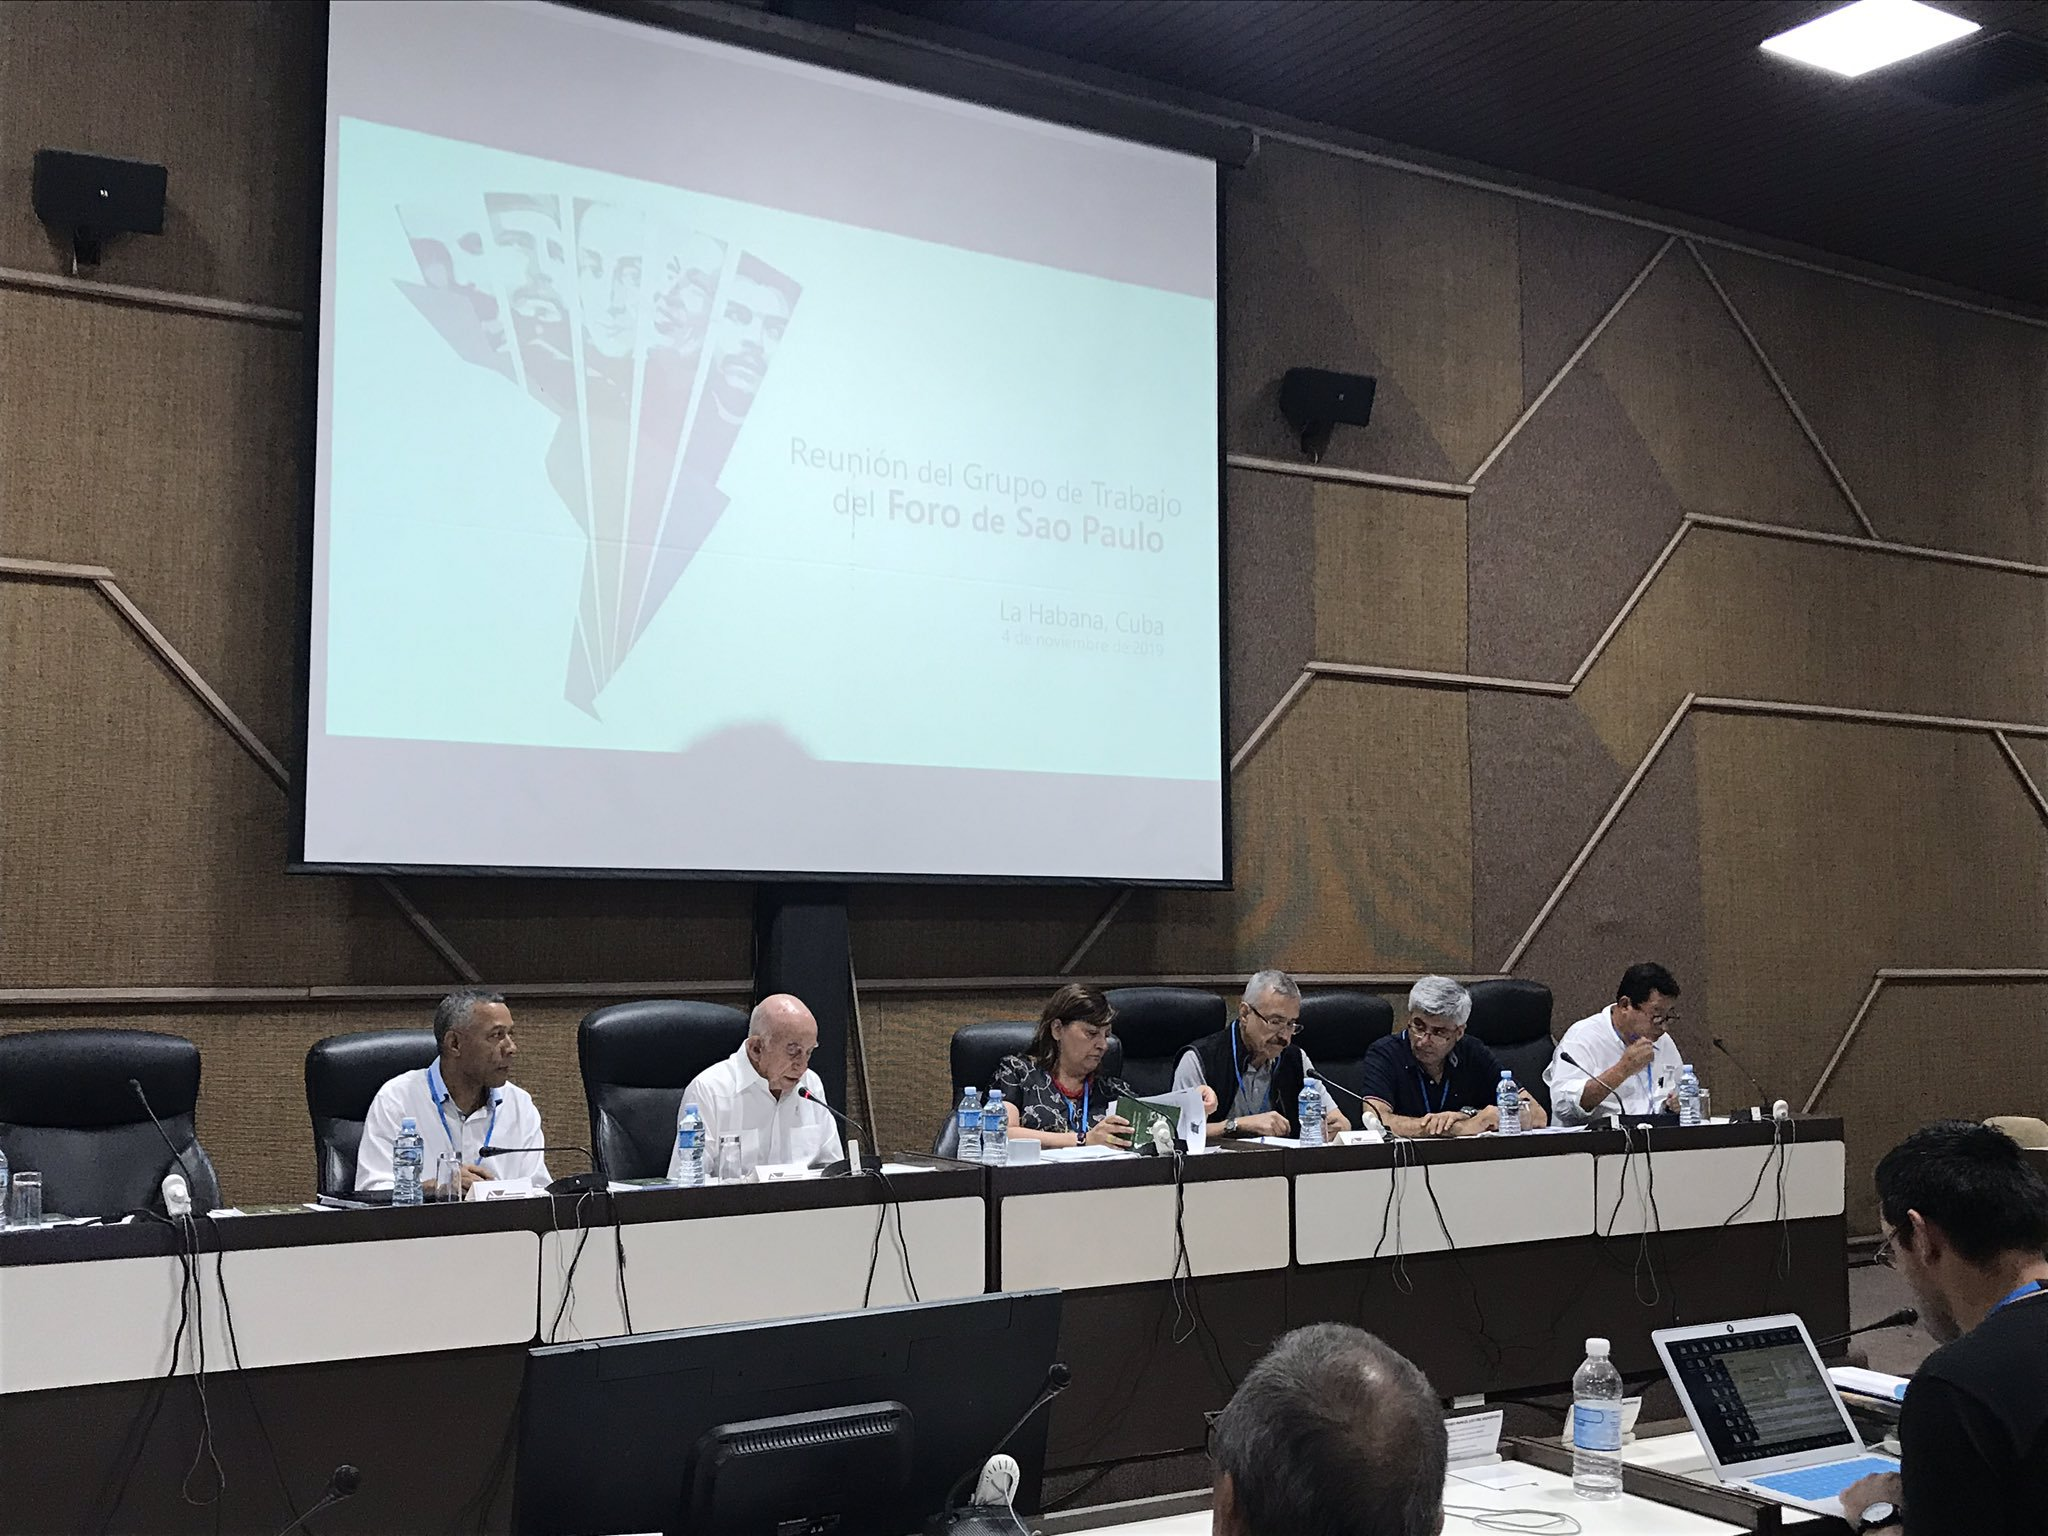 Second Secretary of the Cuban Communist Party chairs the Sao Paulo Forum working group meeting